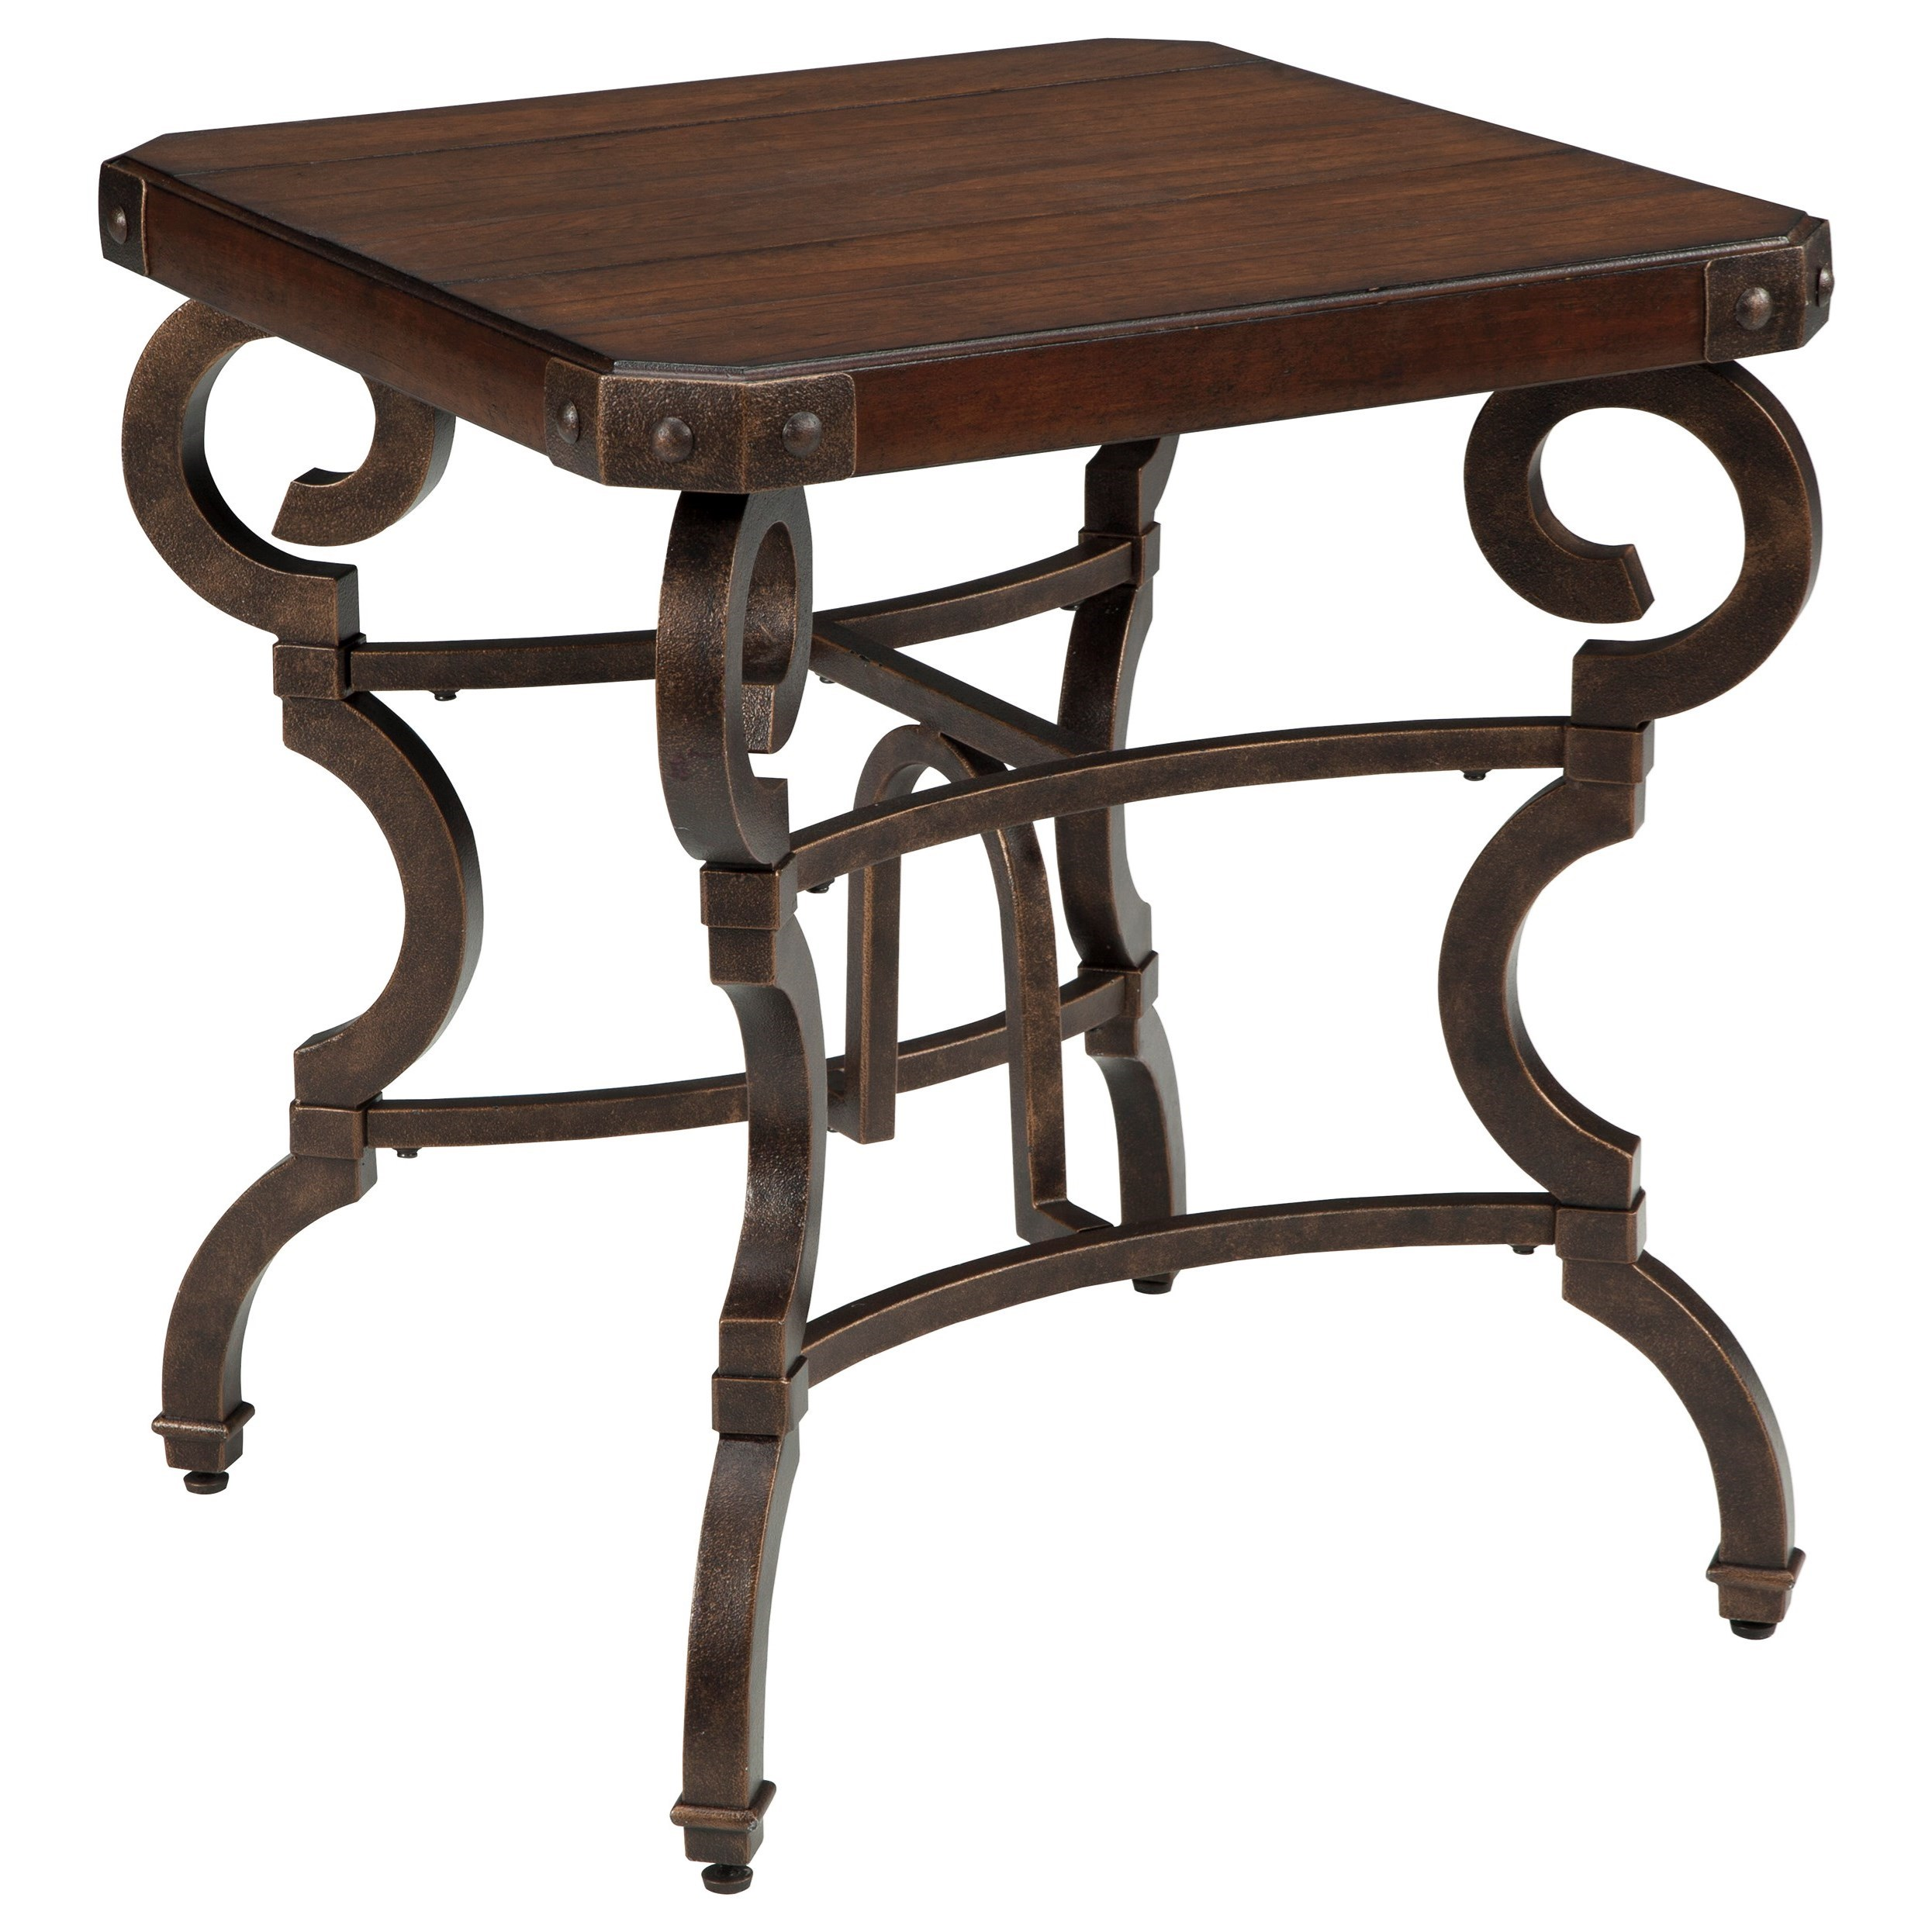 Signature design by ashley hadelyn square end table with for Ivan smith furniture